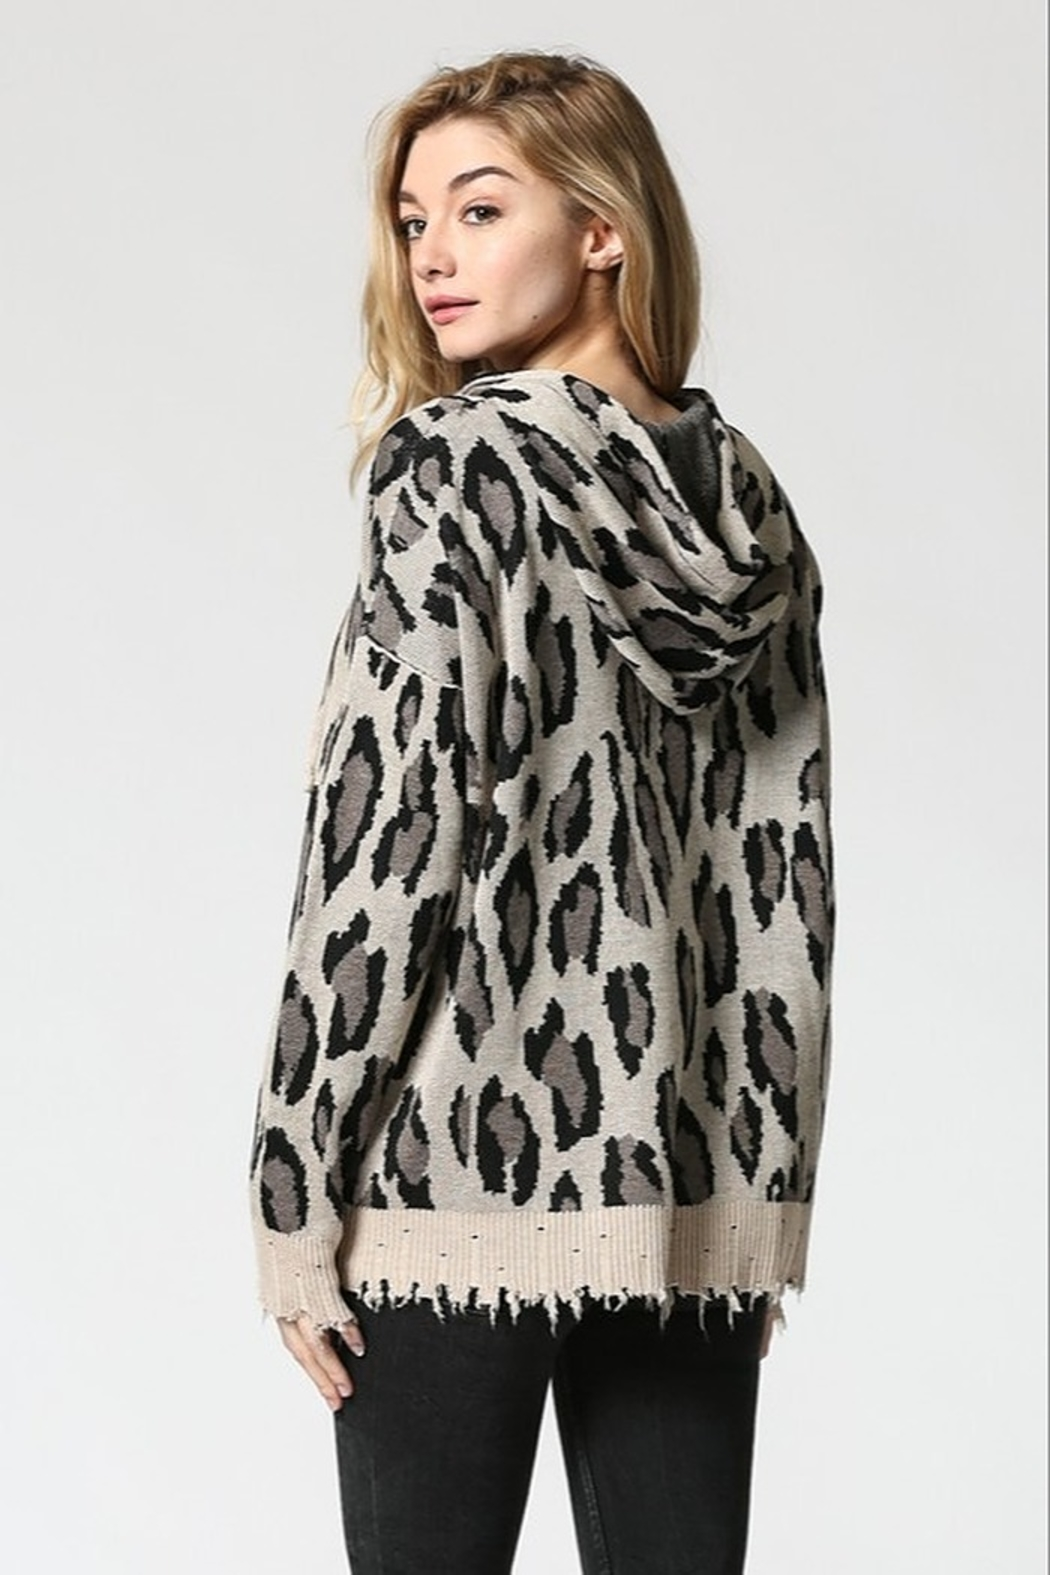 FATE by LFD Leopard patterened hoodie sweater - Front Full Image